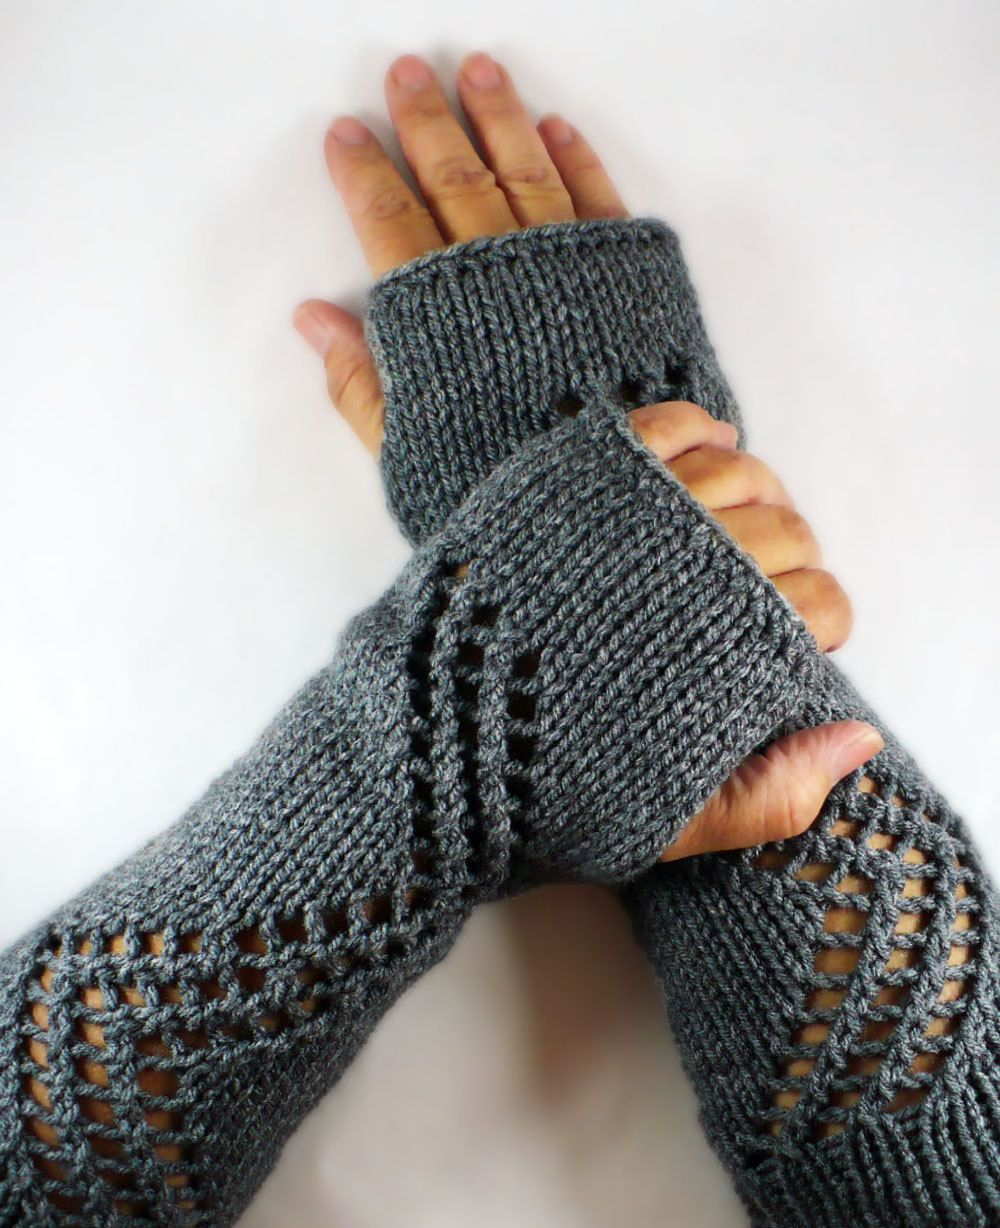 Driving gloves knitting pattern - Knit Fingerless Gloves Gauntlets Grey Lace Gloves Fall Fashion Winter Accessories Warm Gloves Winter Gloves Driving Gloves Womens Gloves